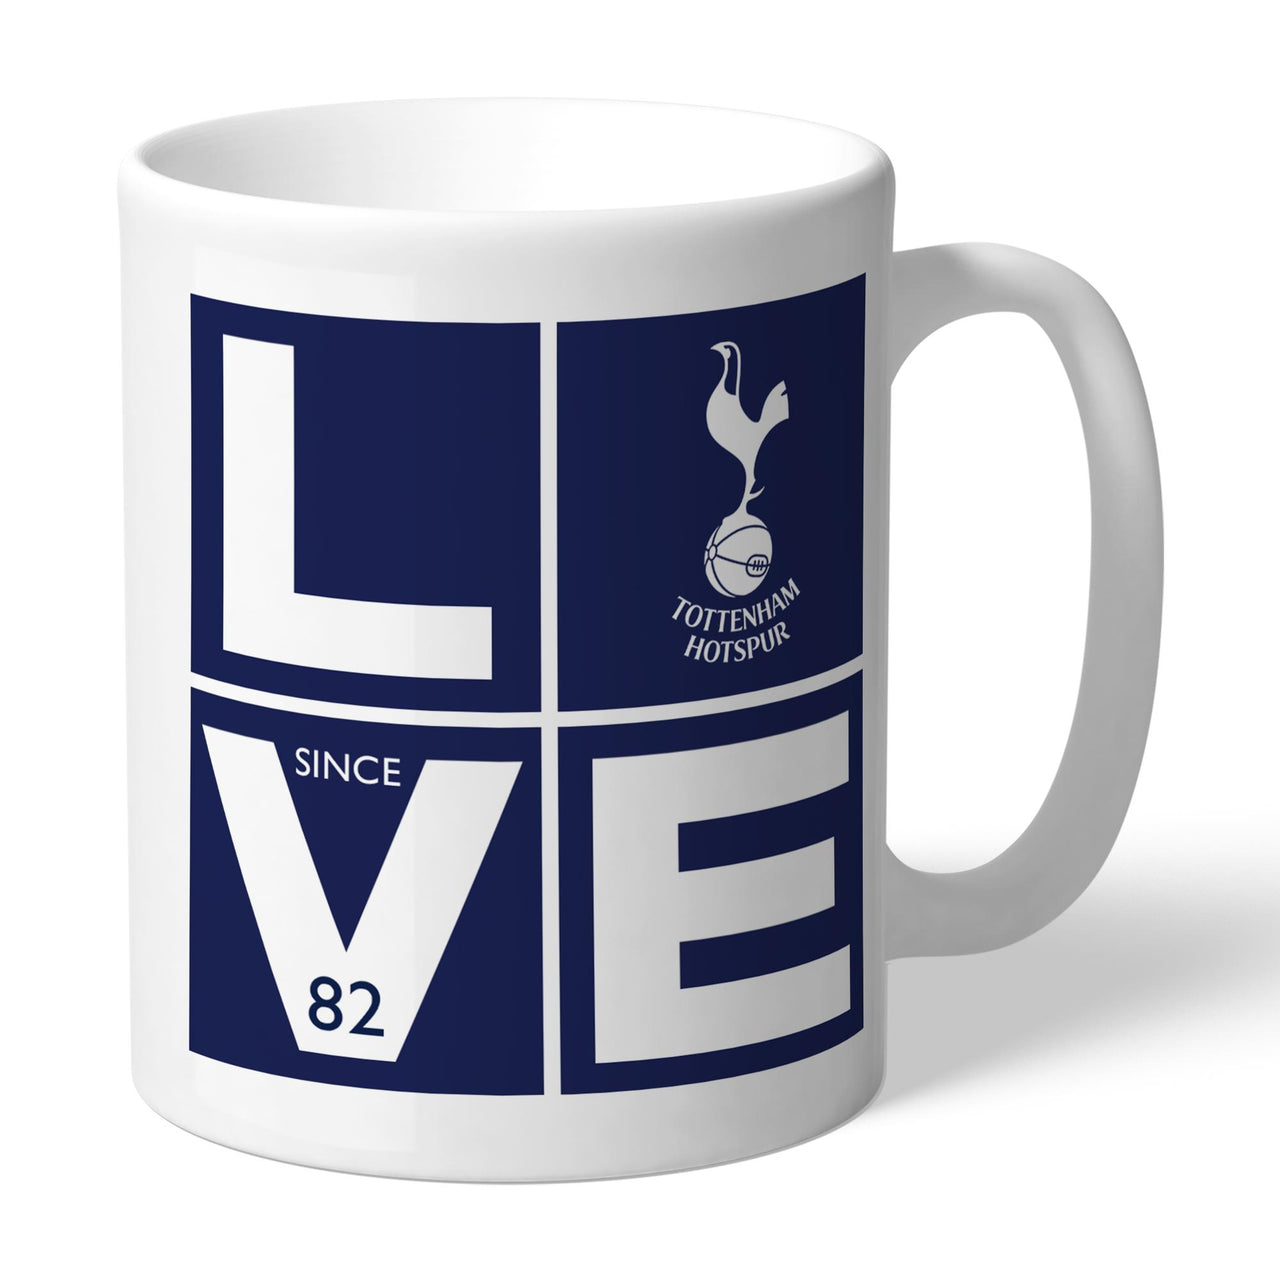 Tottenham Hotspur Love Mugs, Gifts